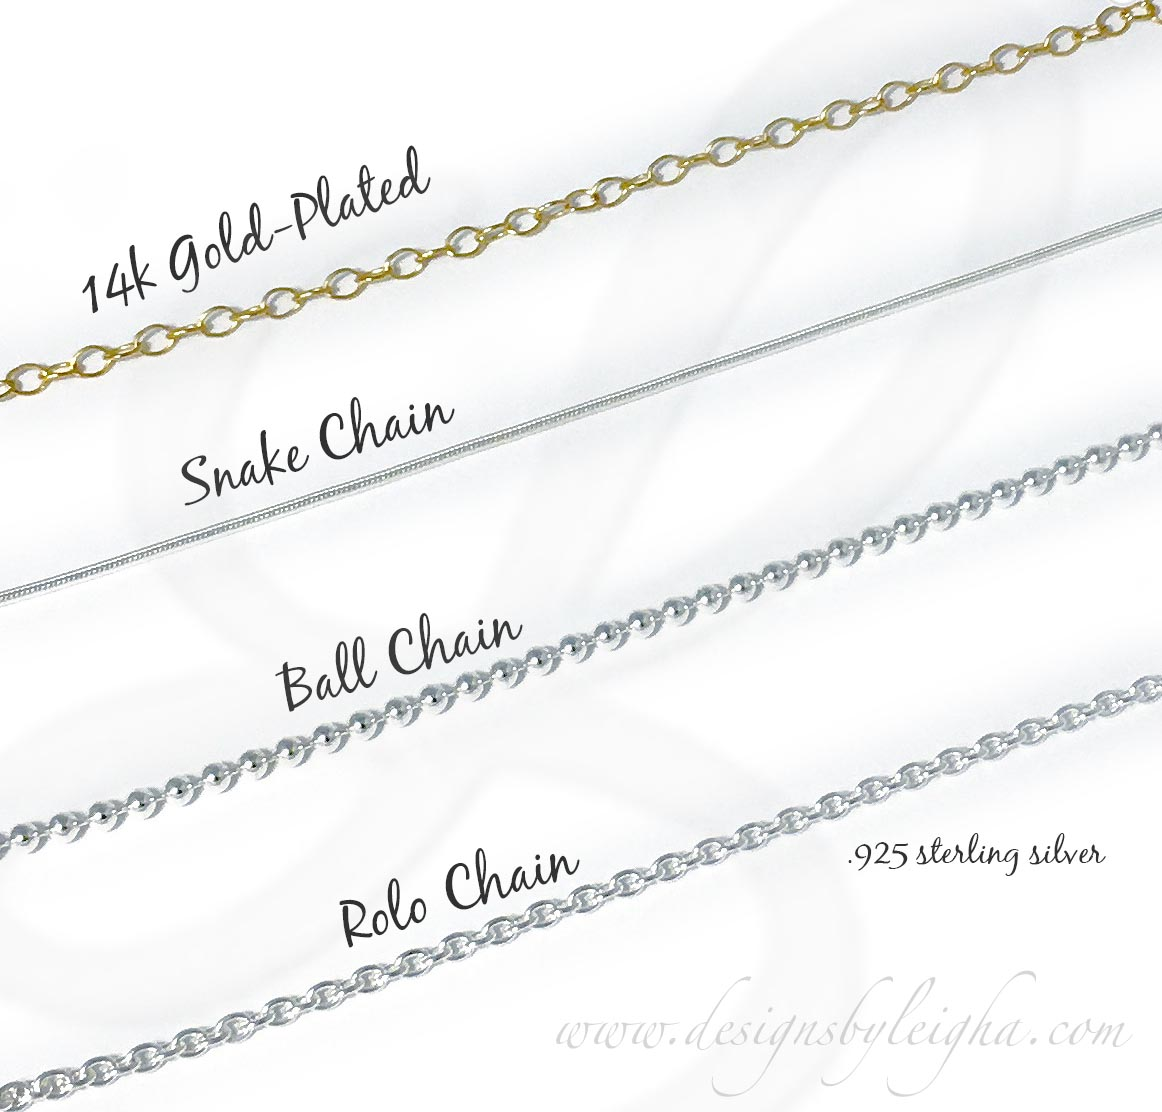 Image of sterling silver necklace chains... snake chain, ball chain and rolo chain